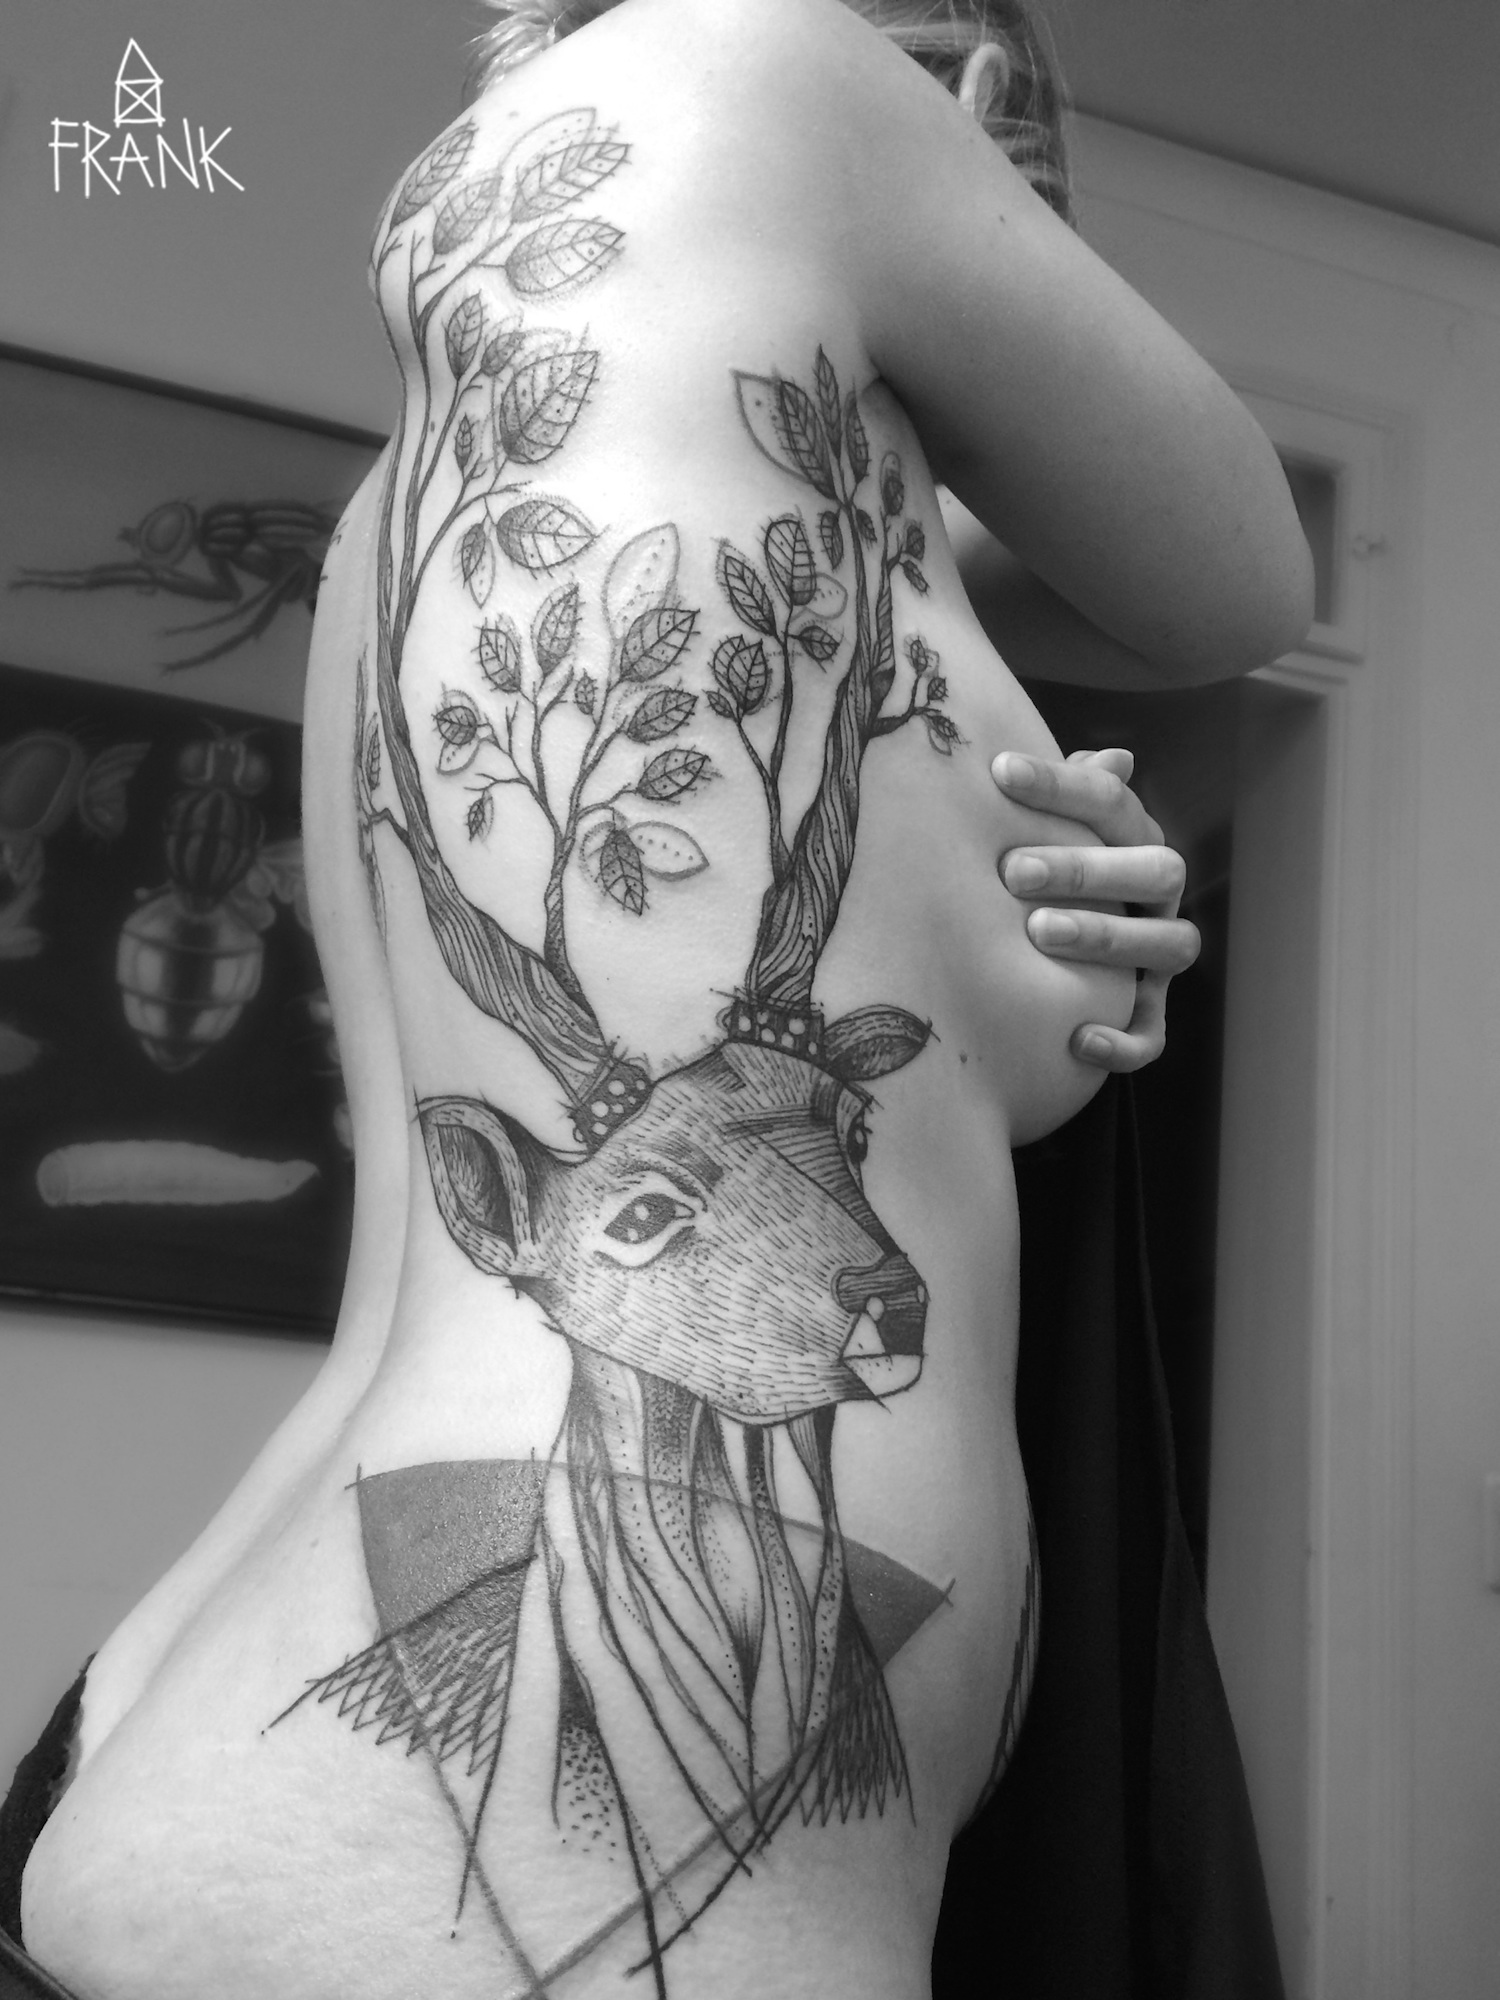 Miriam Frank tattoo